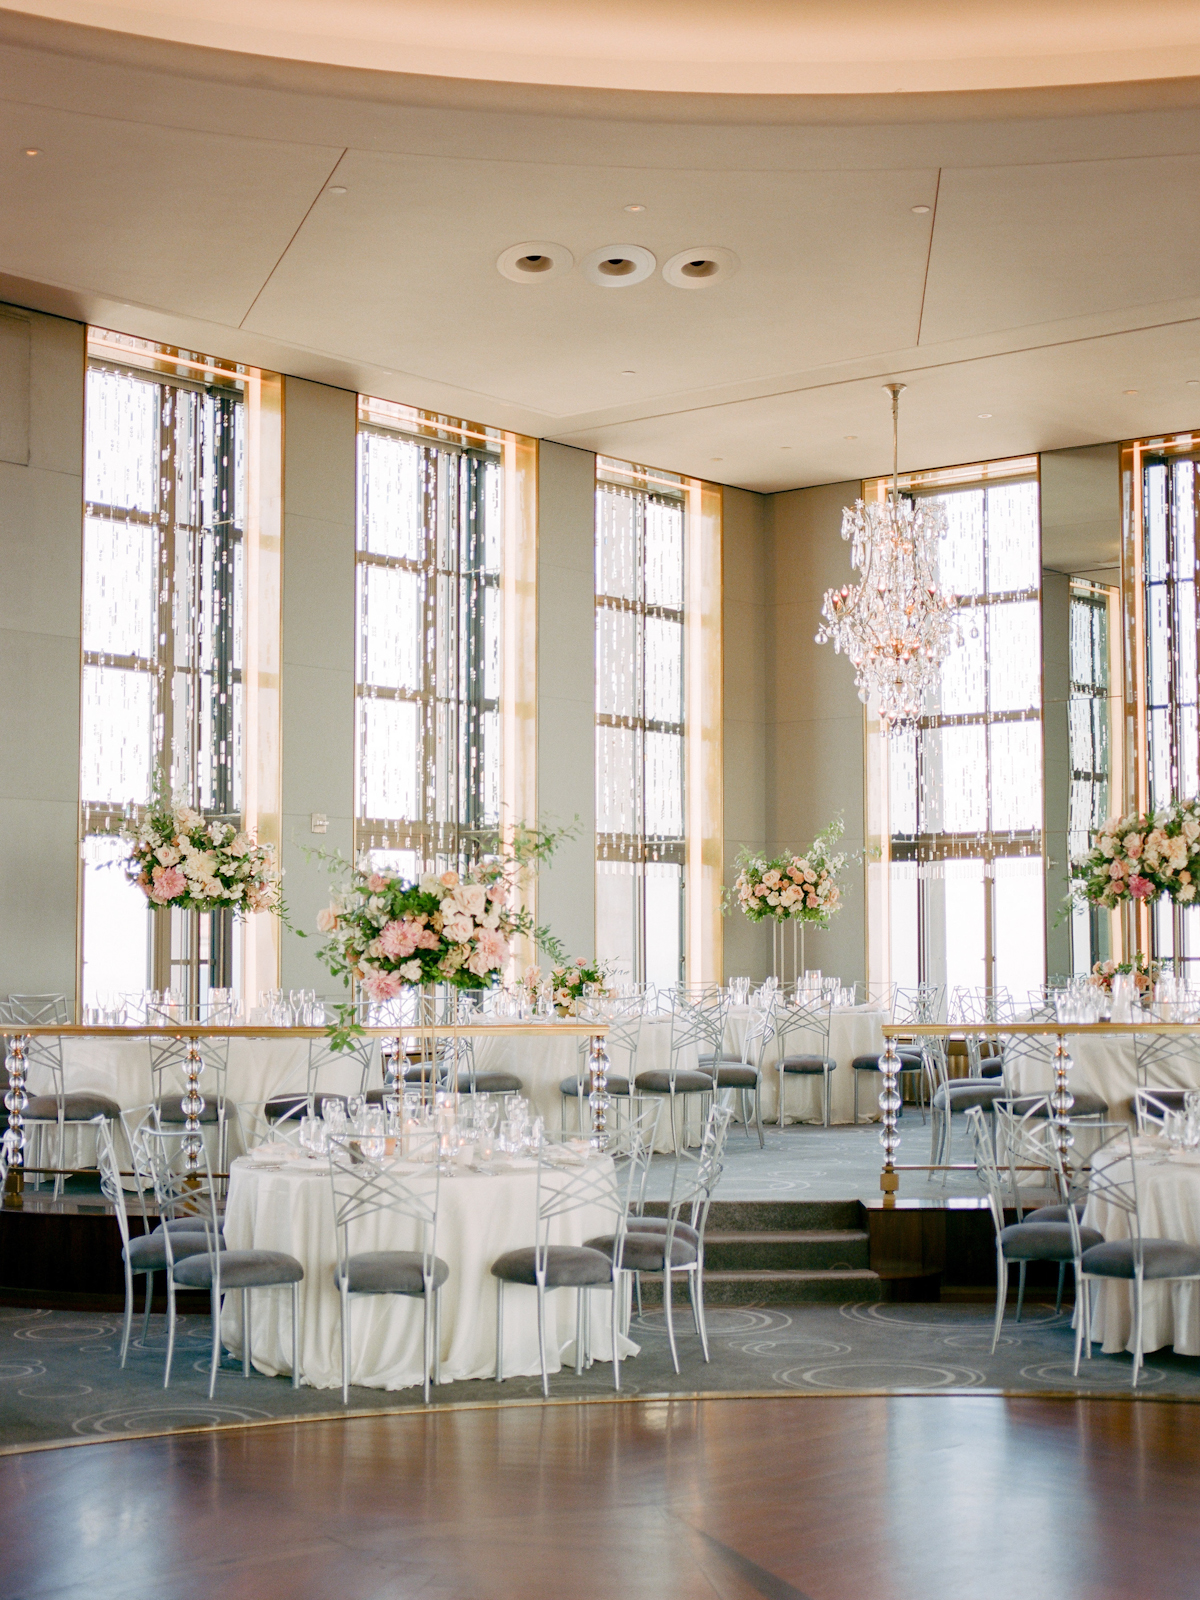 Rainbow Room wedding tablescape